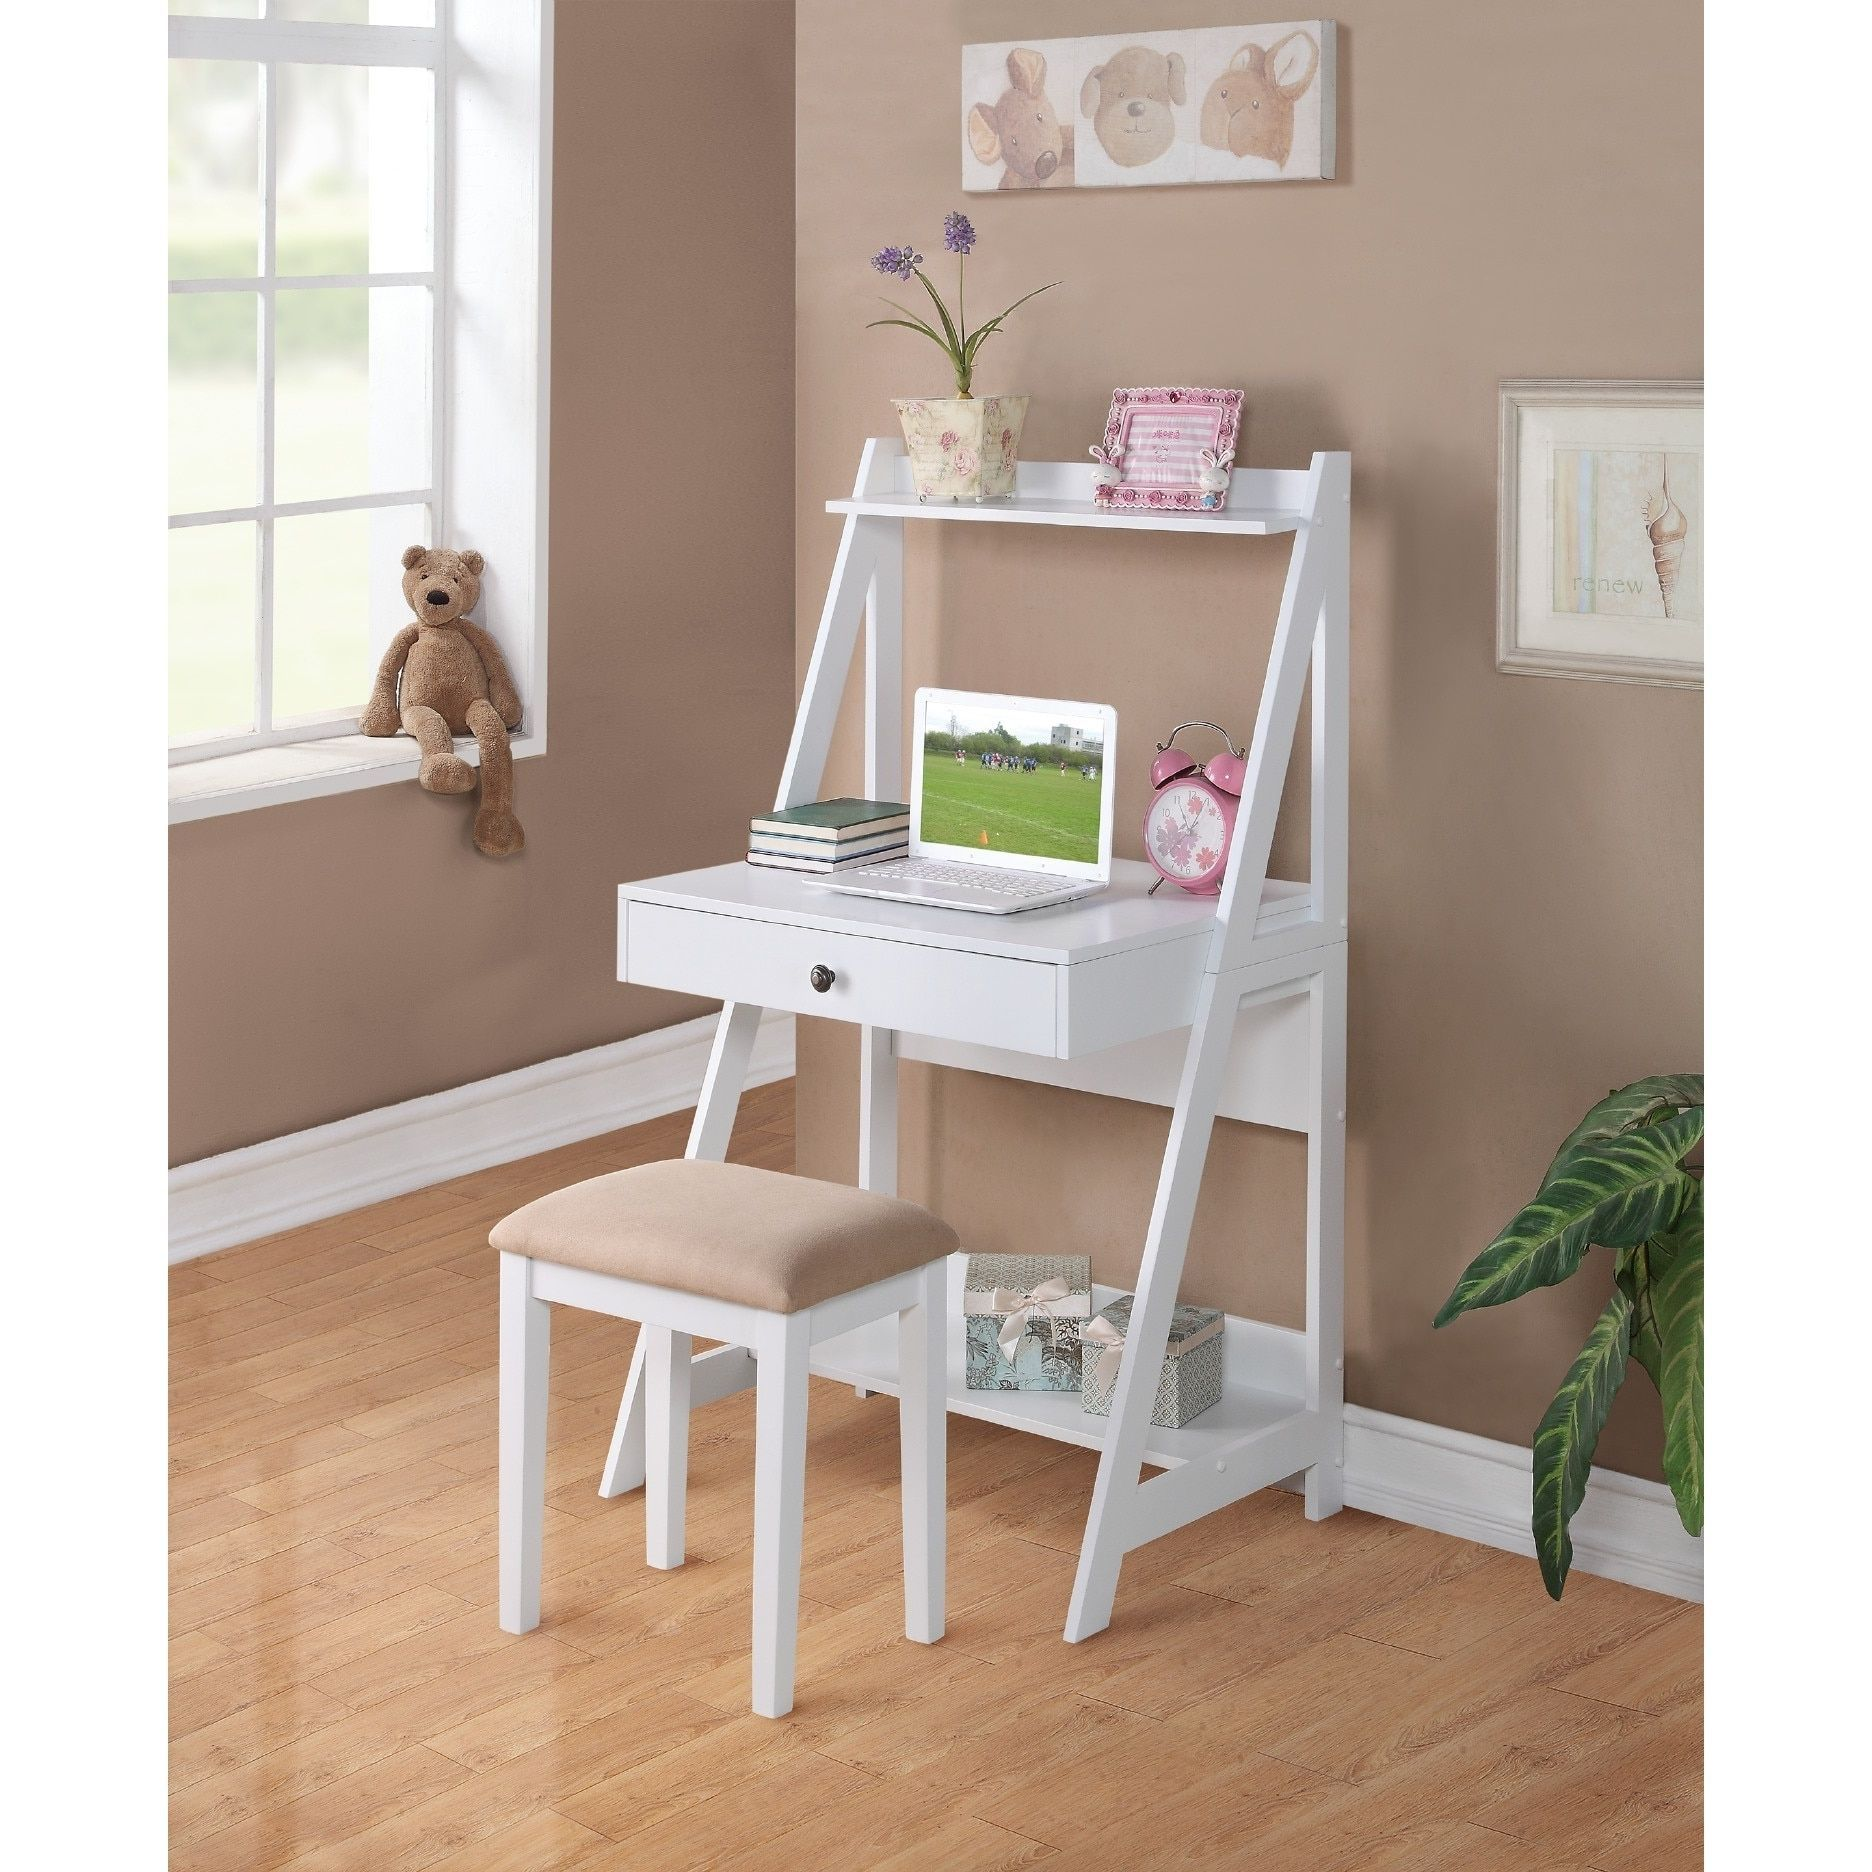 Prime Sauder Writing Desk W Stool Hacer Y Vender In 2019 Gmtry Best Dining Table And Chair Ideas Images Gmtryco